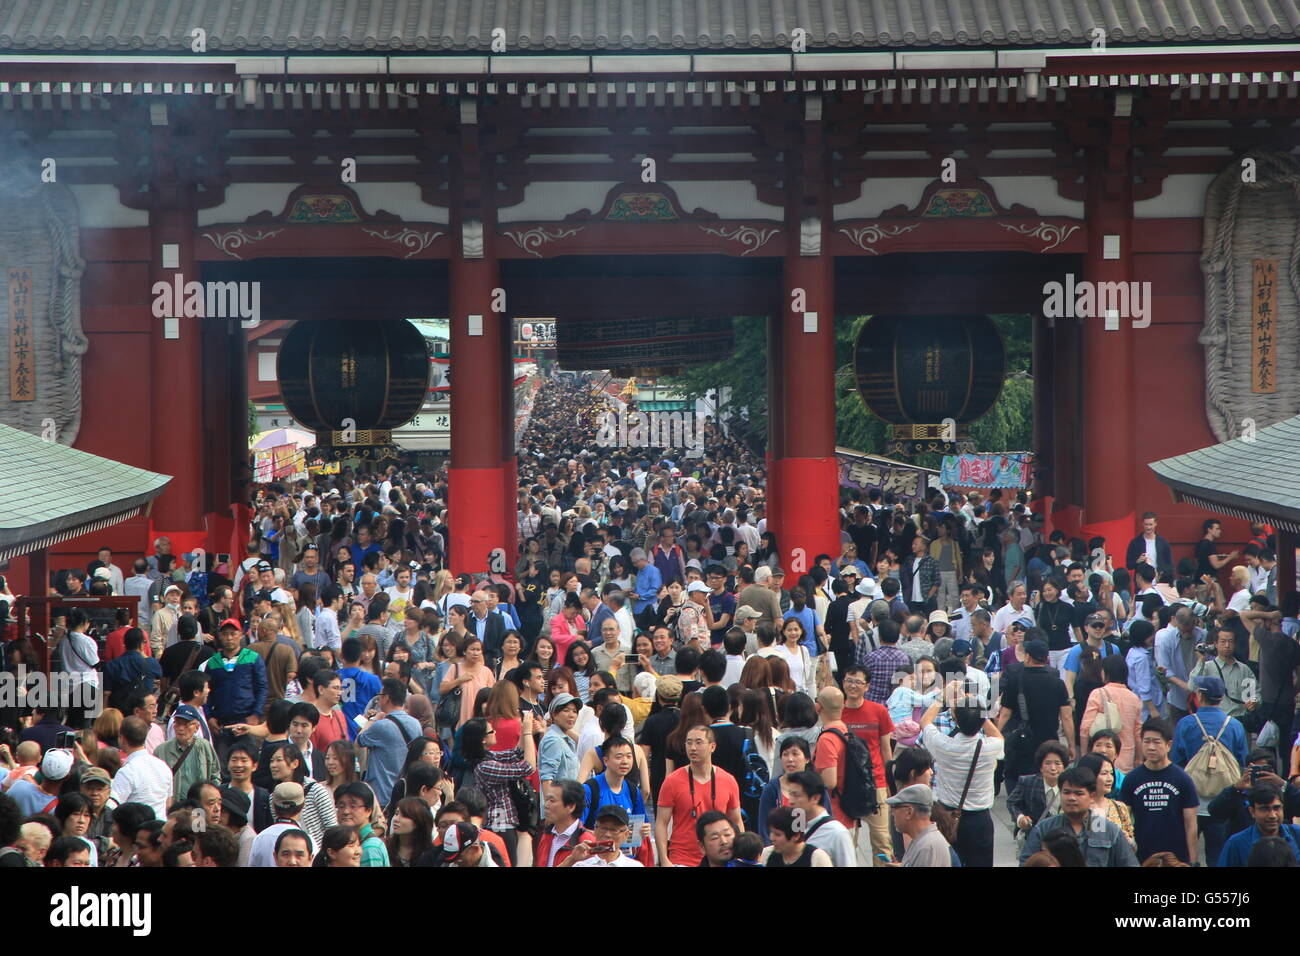 People Crowd in to Senso-Ji Temple for Sanja Matsuri Festival - Stock Image